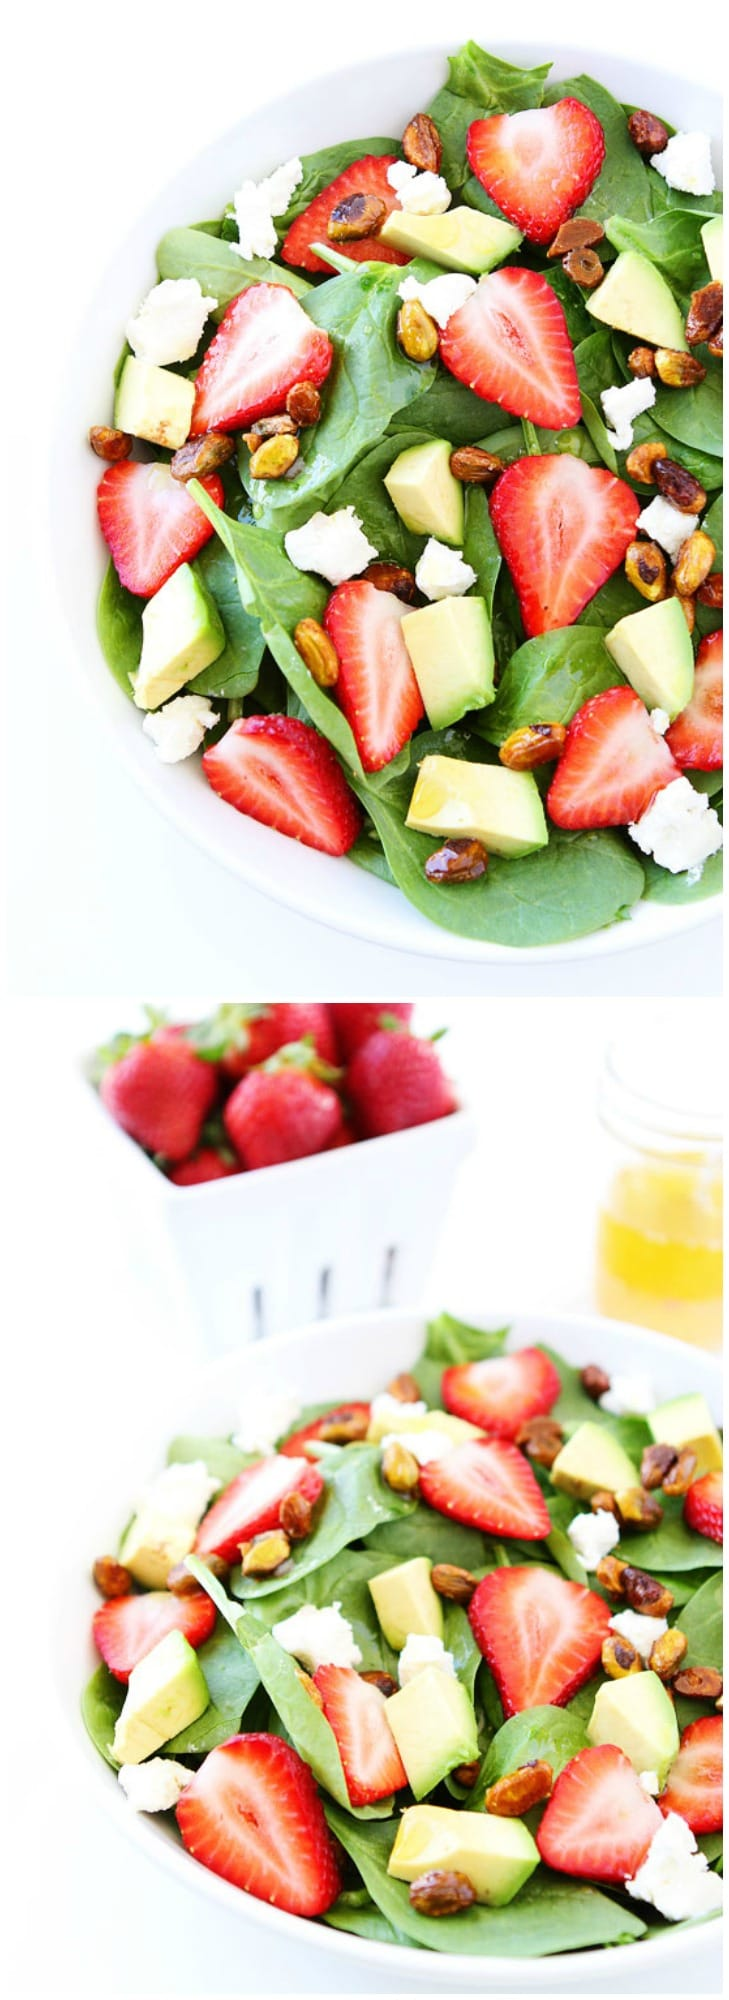 Strawberry Spinach Salad with Avocado, Goat Cheese, and Candied ...